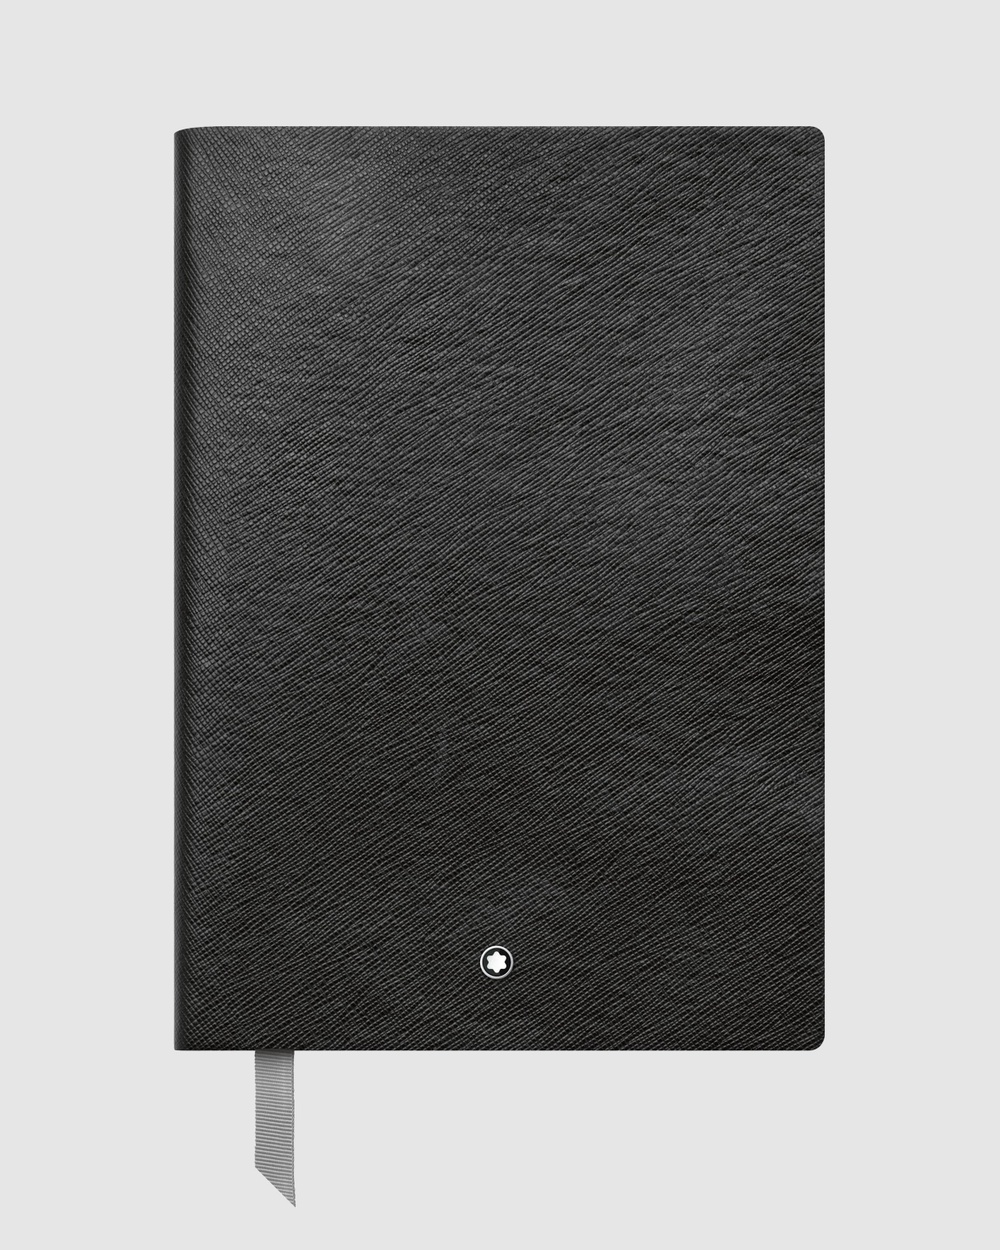 Montblanc STA Notebook 146 Black, Lined All Stationery Black